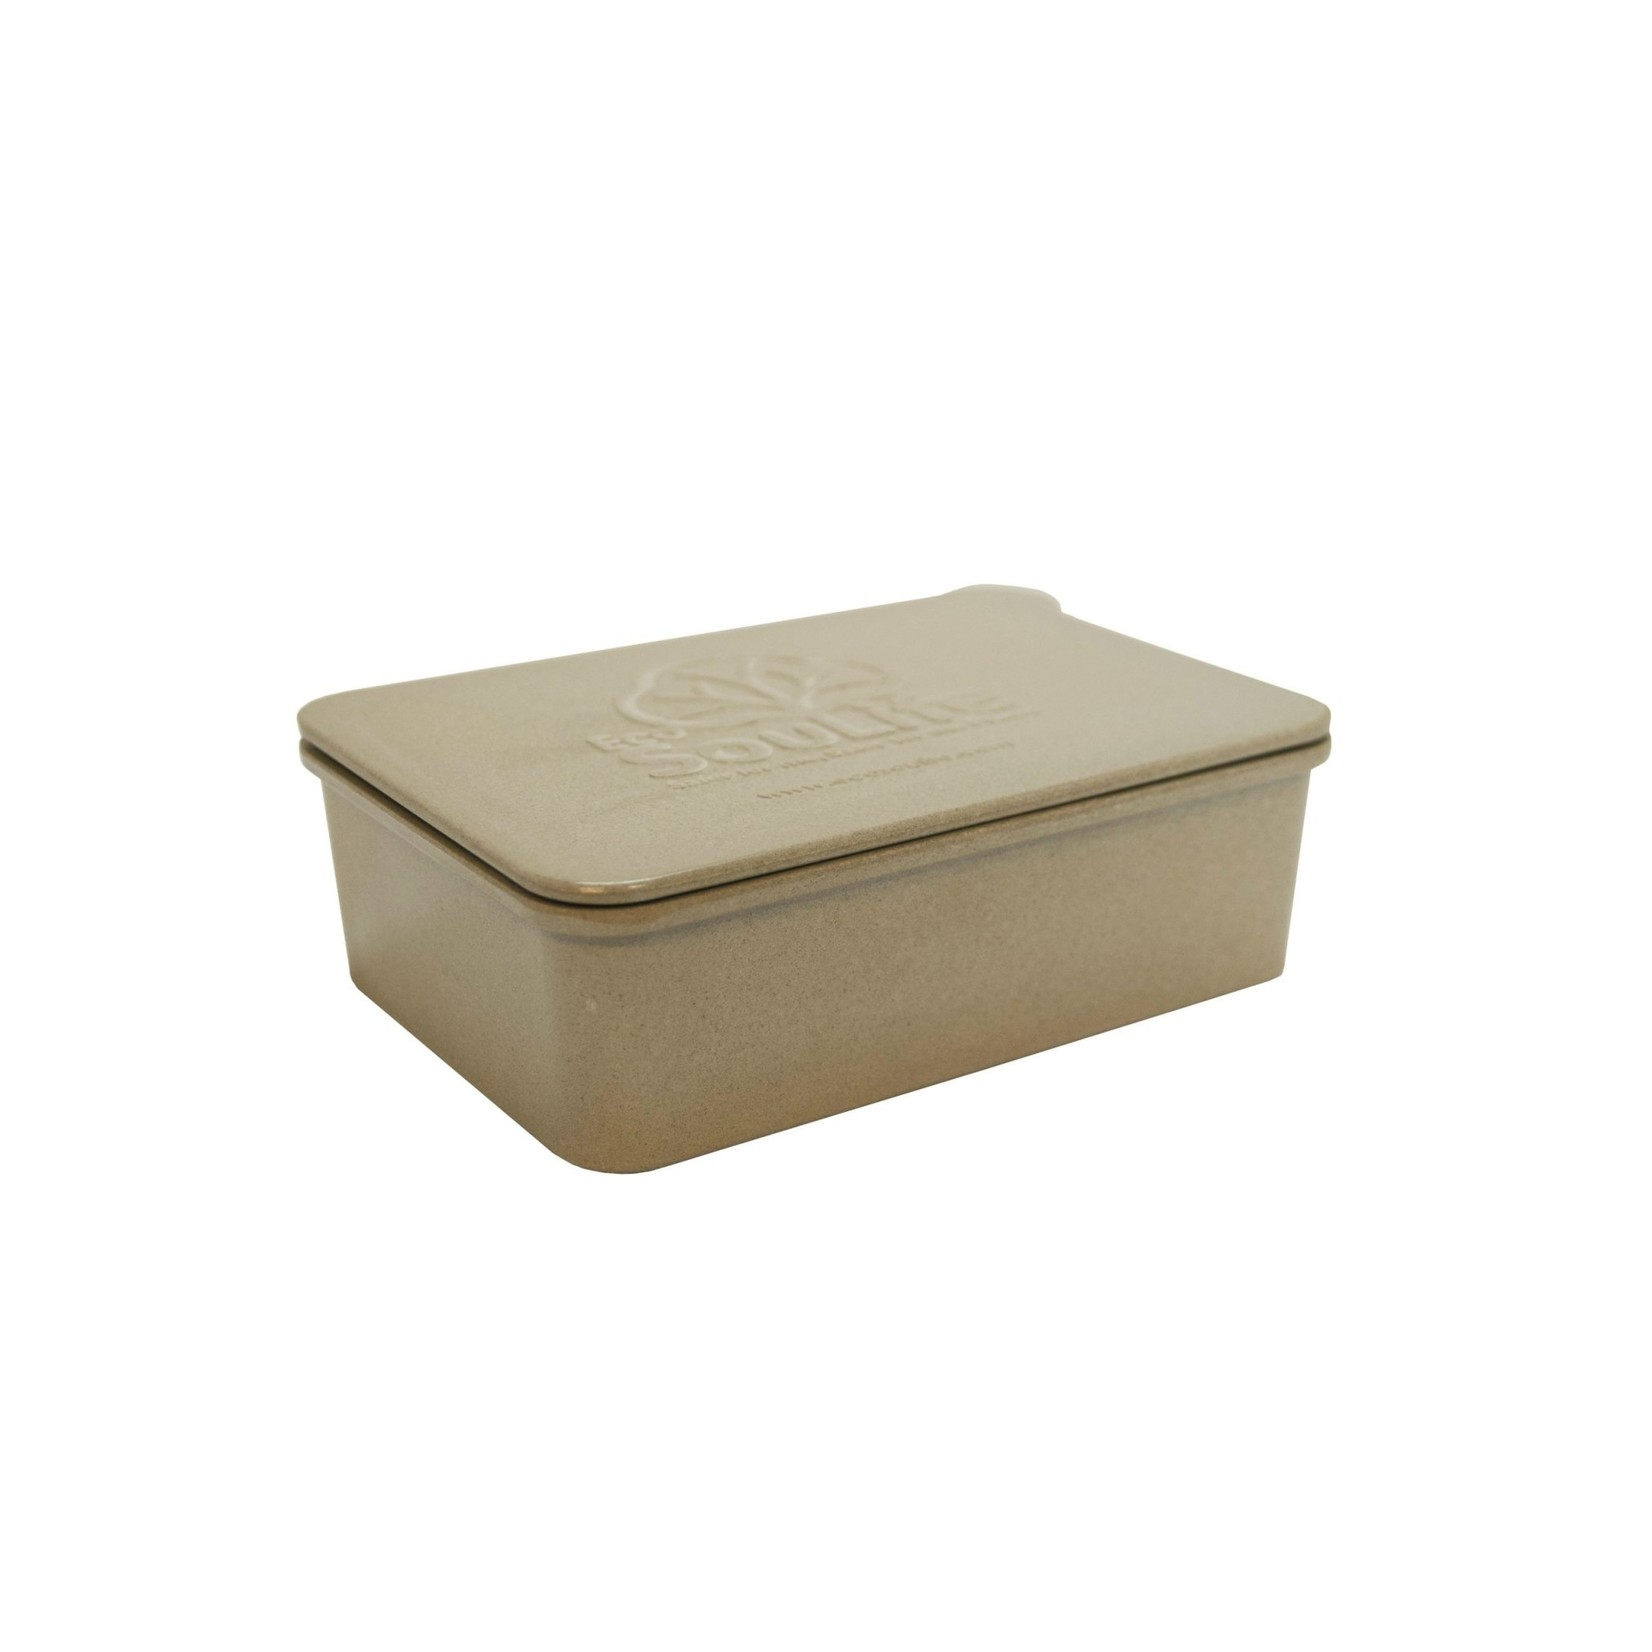 EcoSoulife EcoSoulife Rice Husk Travel Box